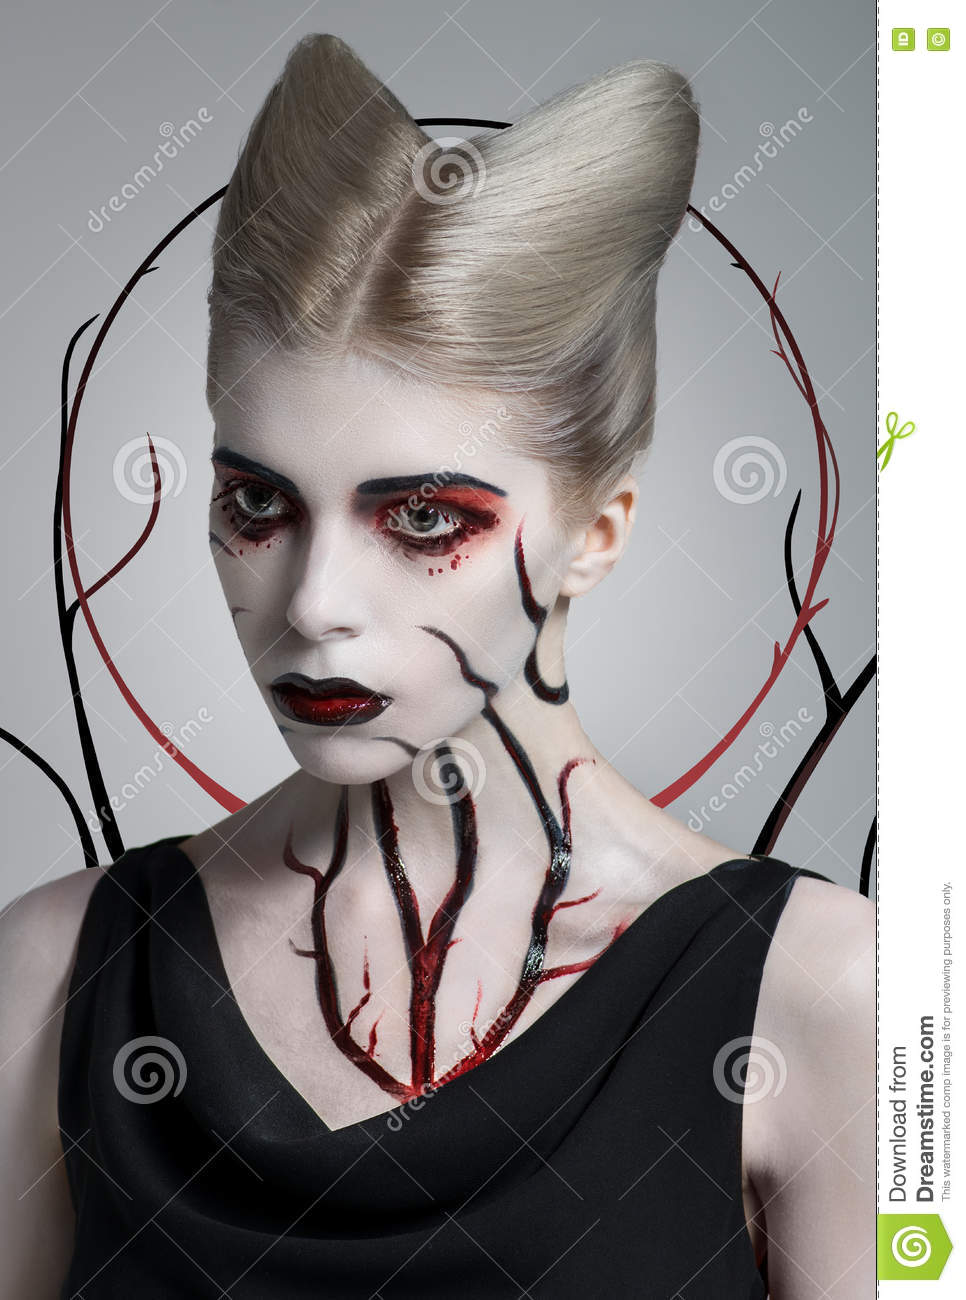 Scary Girl With Bloody Body Art Stock Image - Image of ...